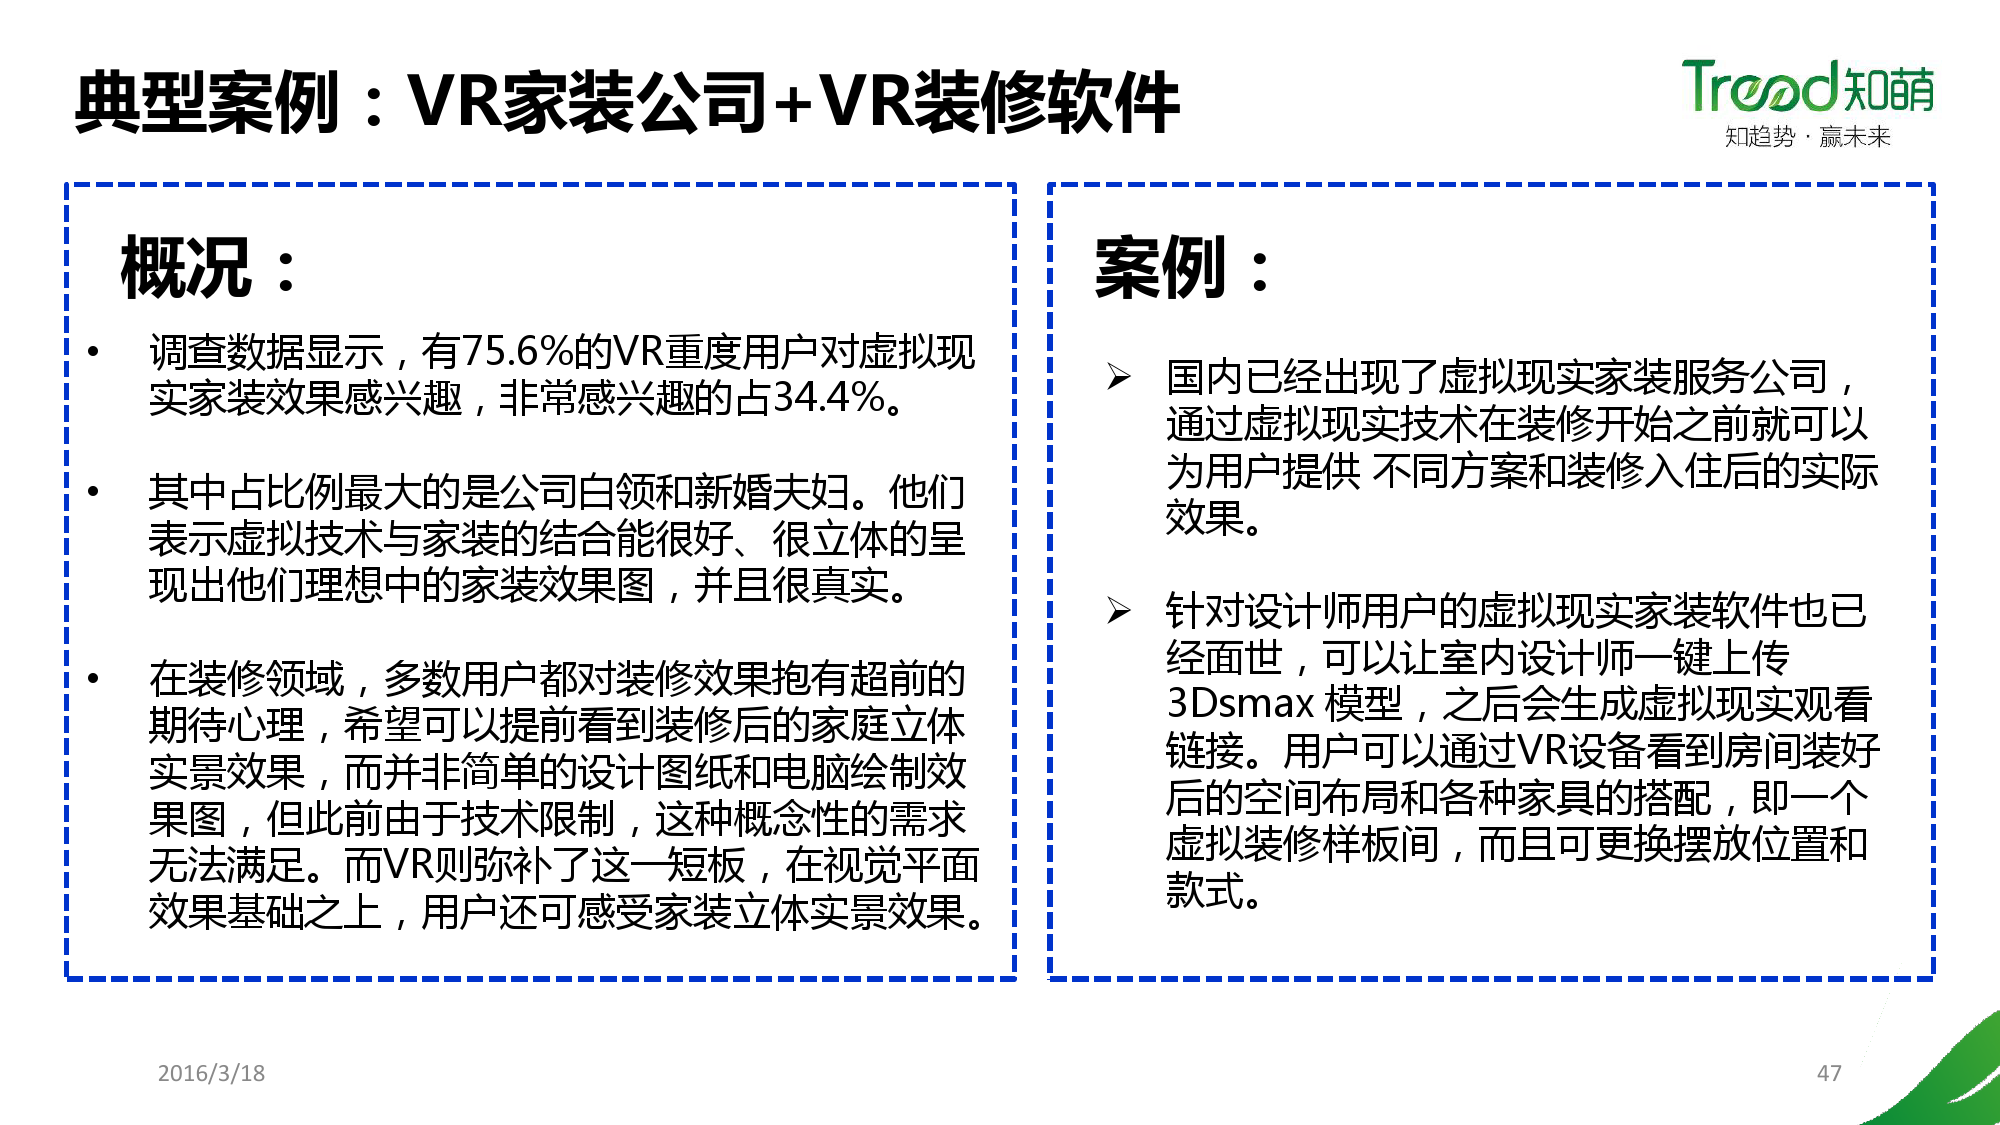 China VR user behavior research report _000047